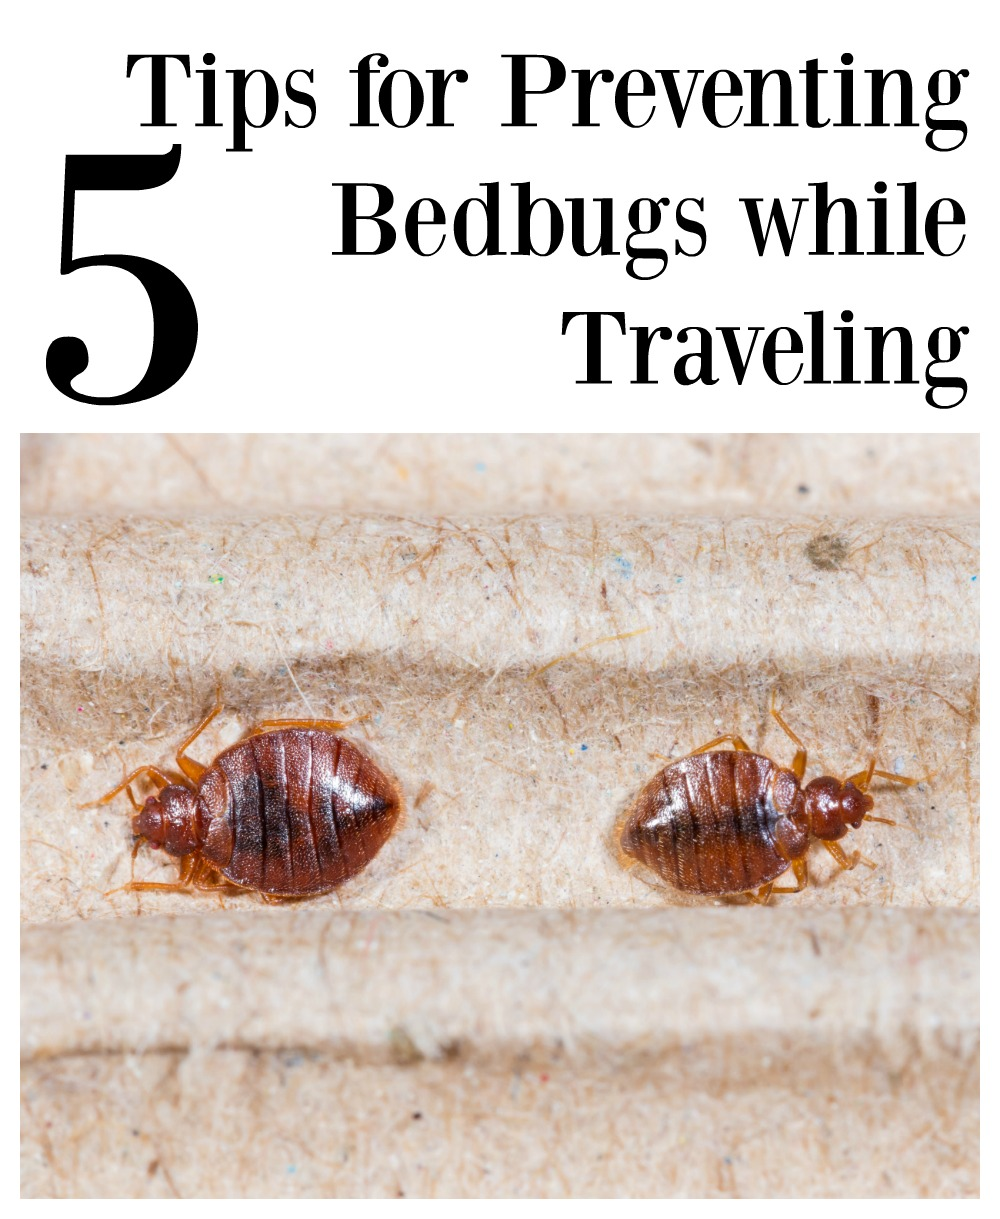 5 tips for preventing bedbugs while traveling